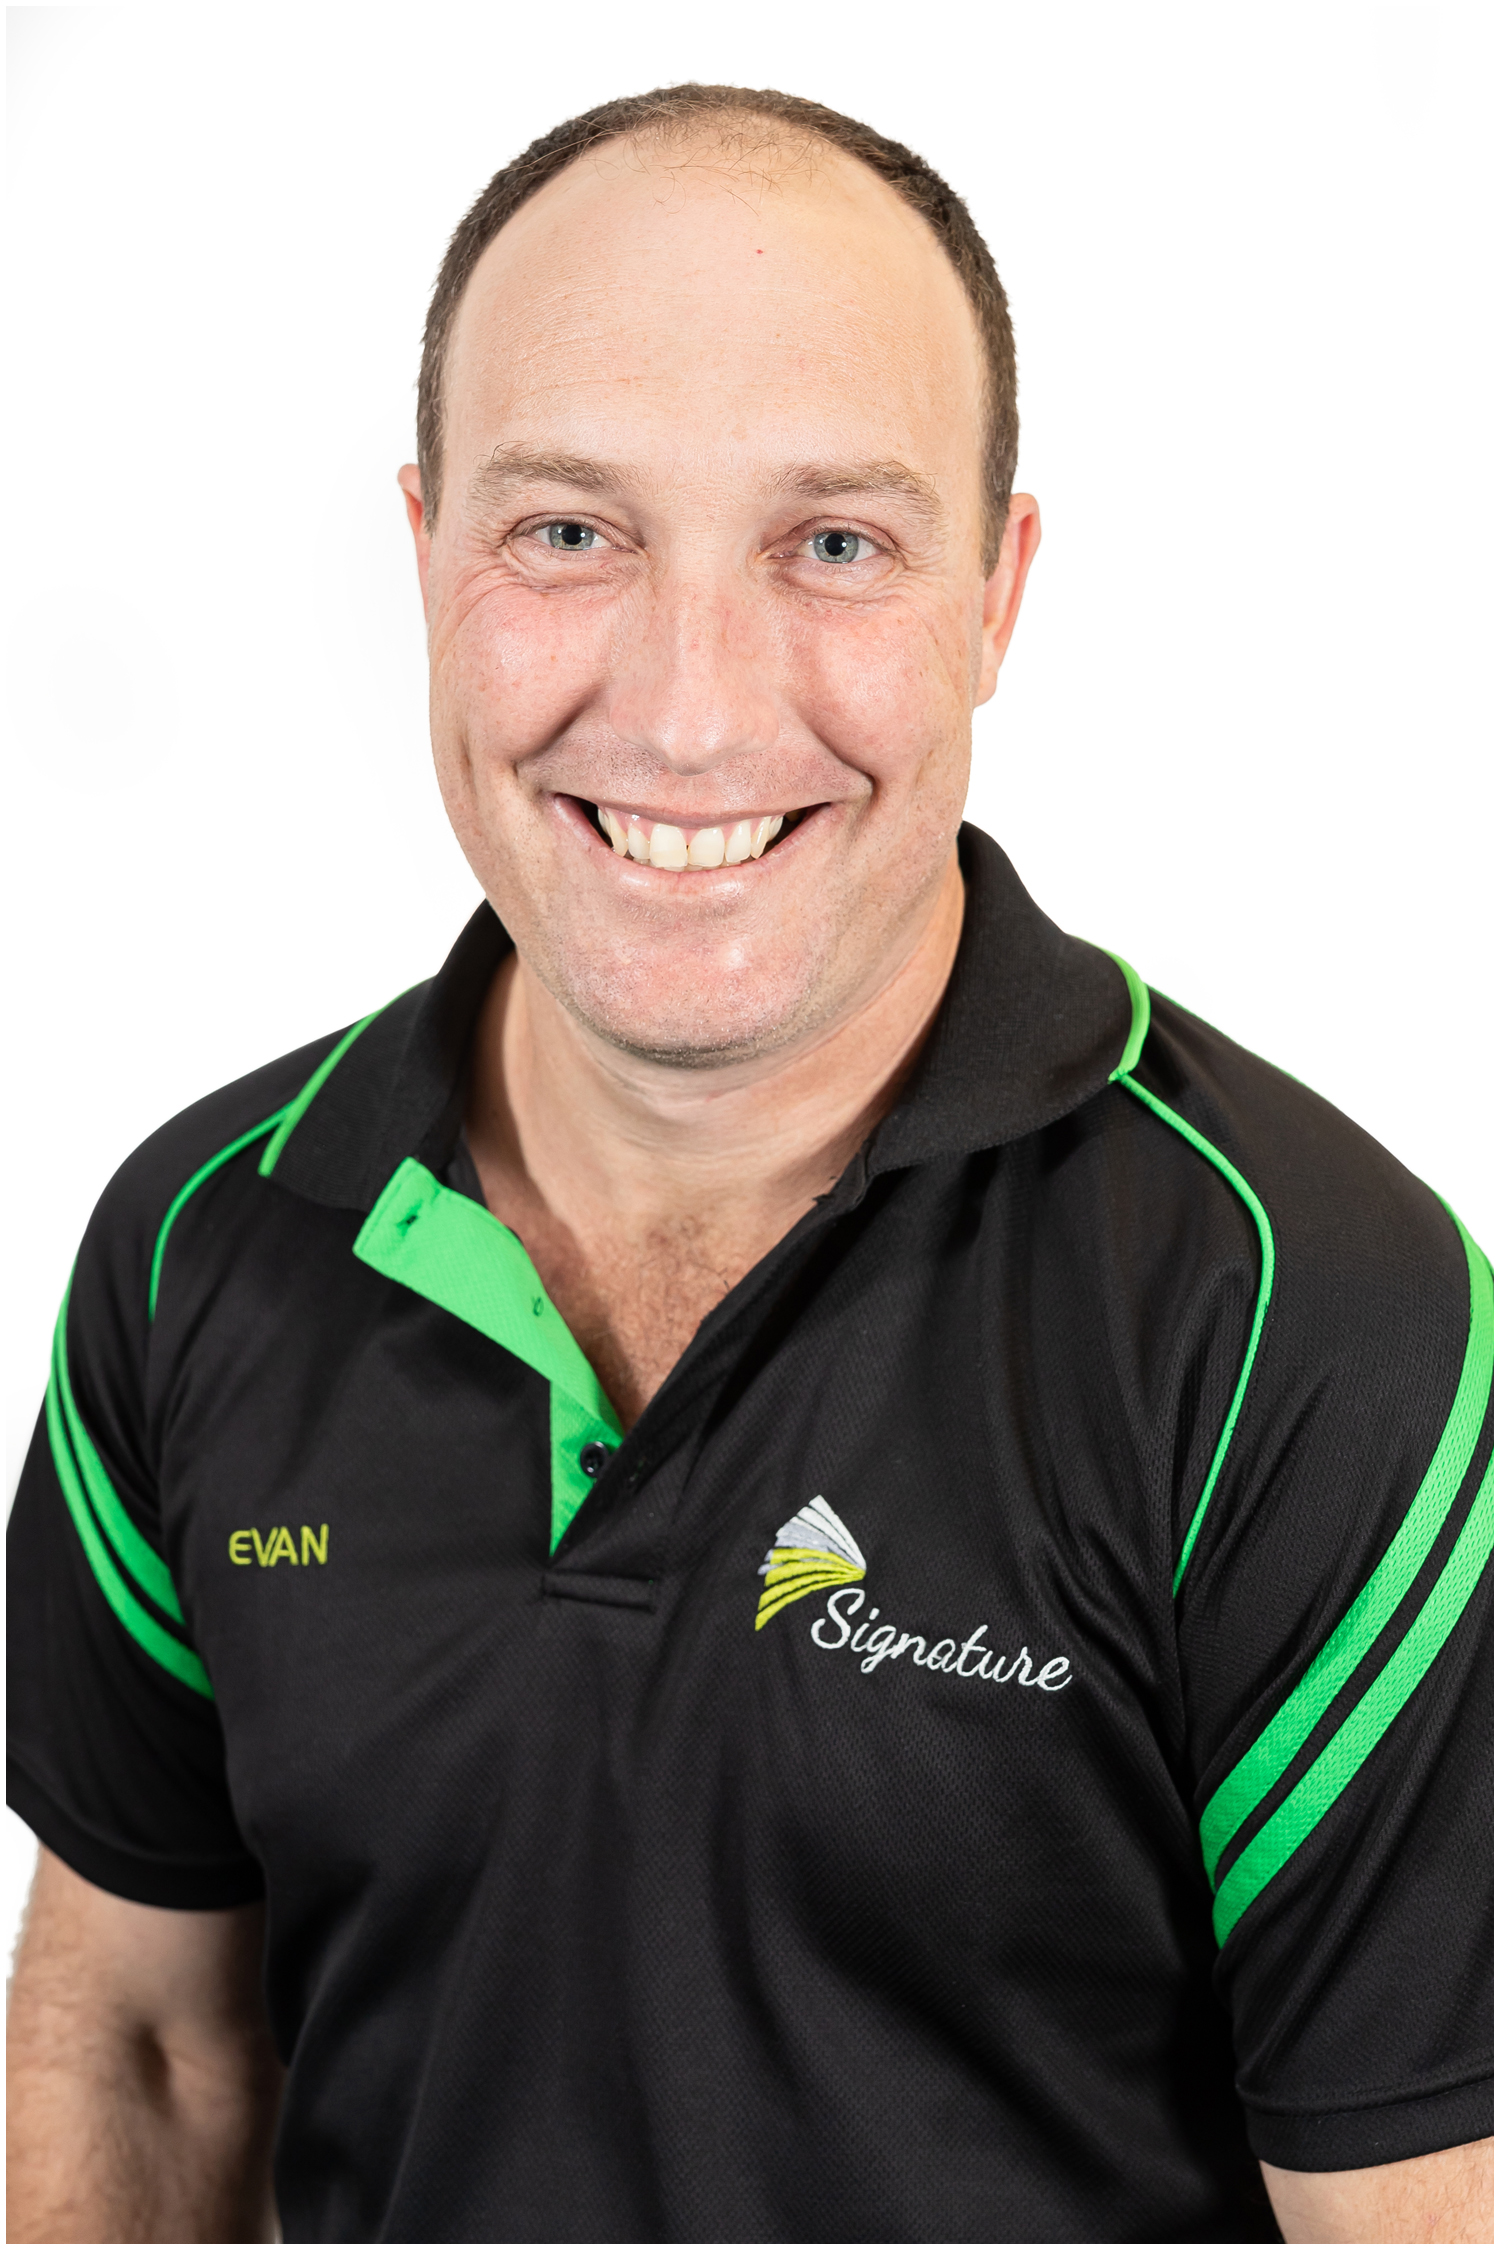 Evan operations manager queensland signature roofing sunshine coast brisbane reroofing roof replacement